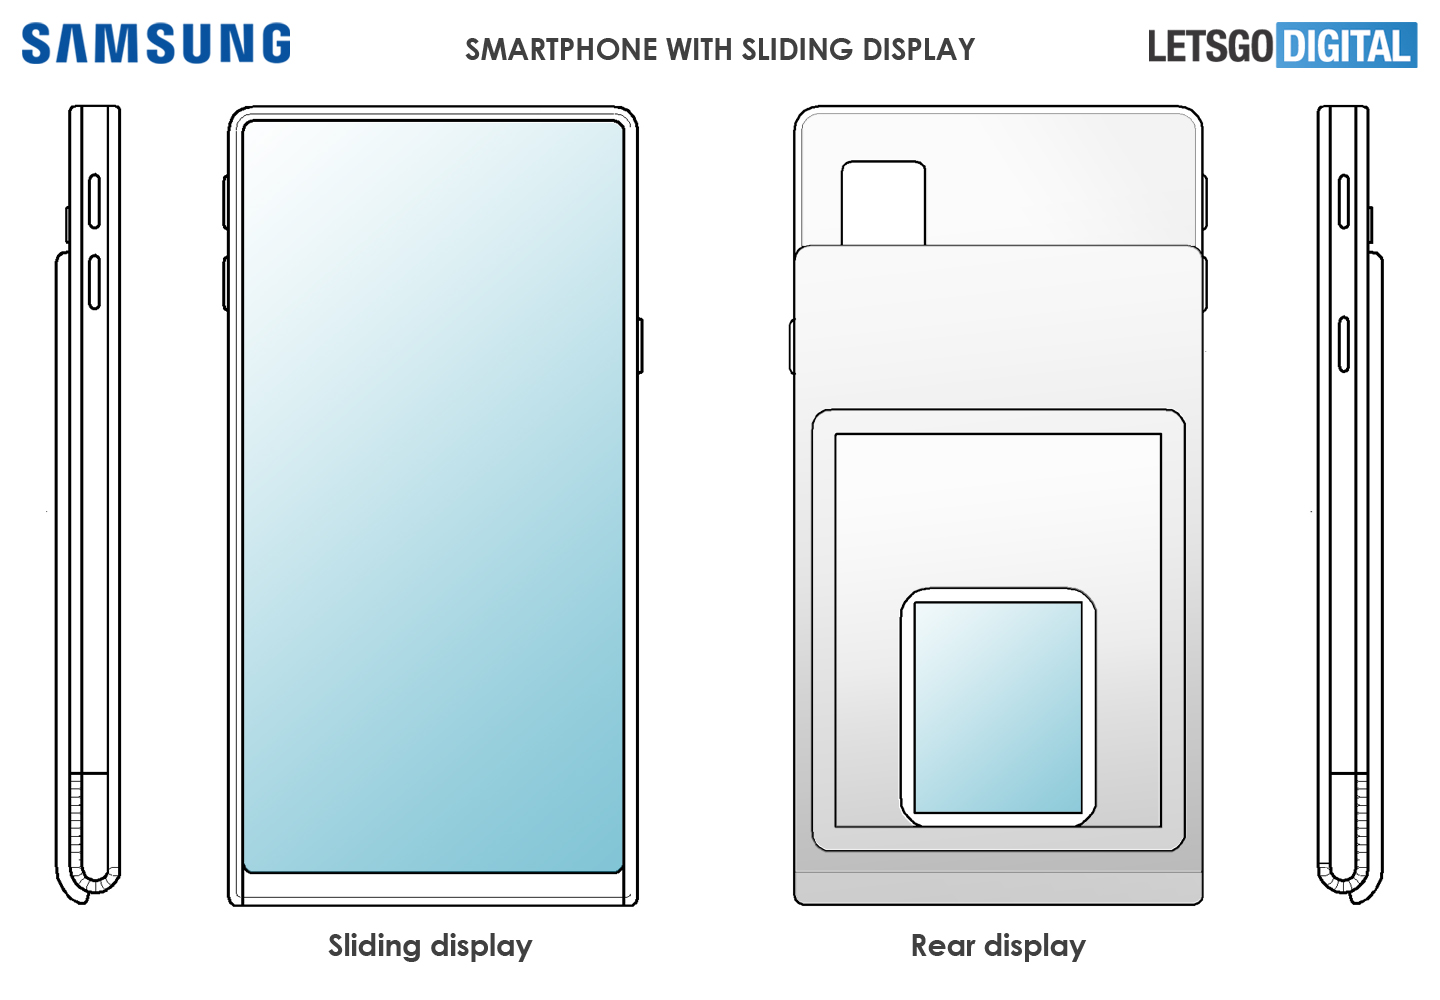 Samsung smartphone sliding display